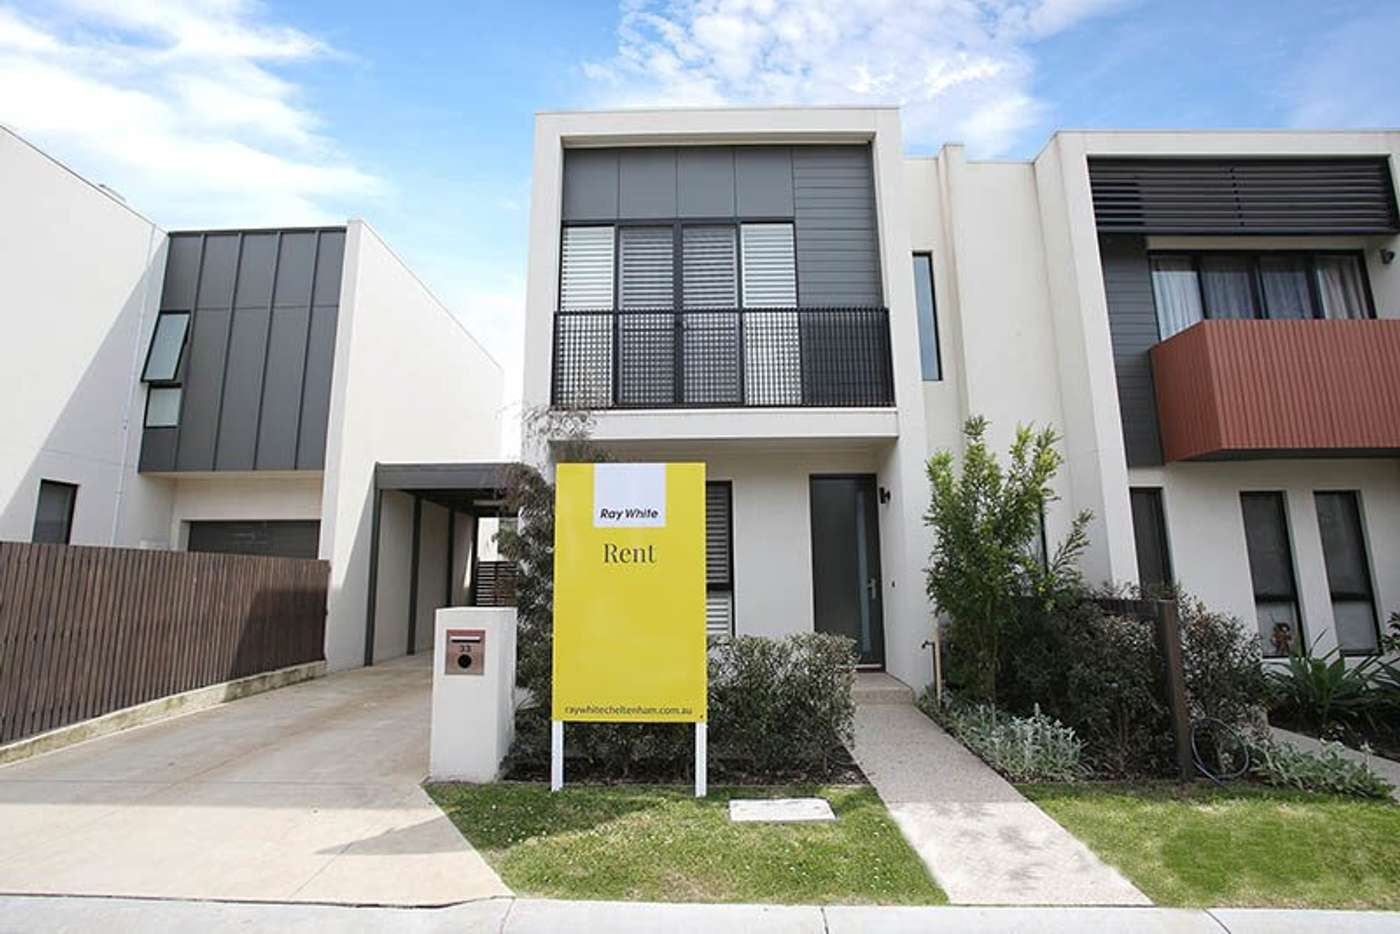 Main view of Homely house listing, 33 Mulberry Avenue, Cheltenham VIC 3192